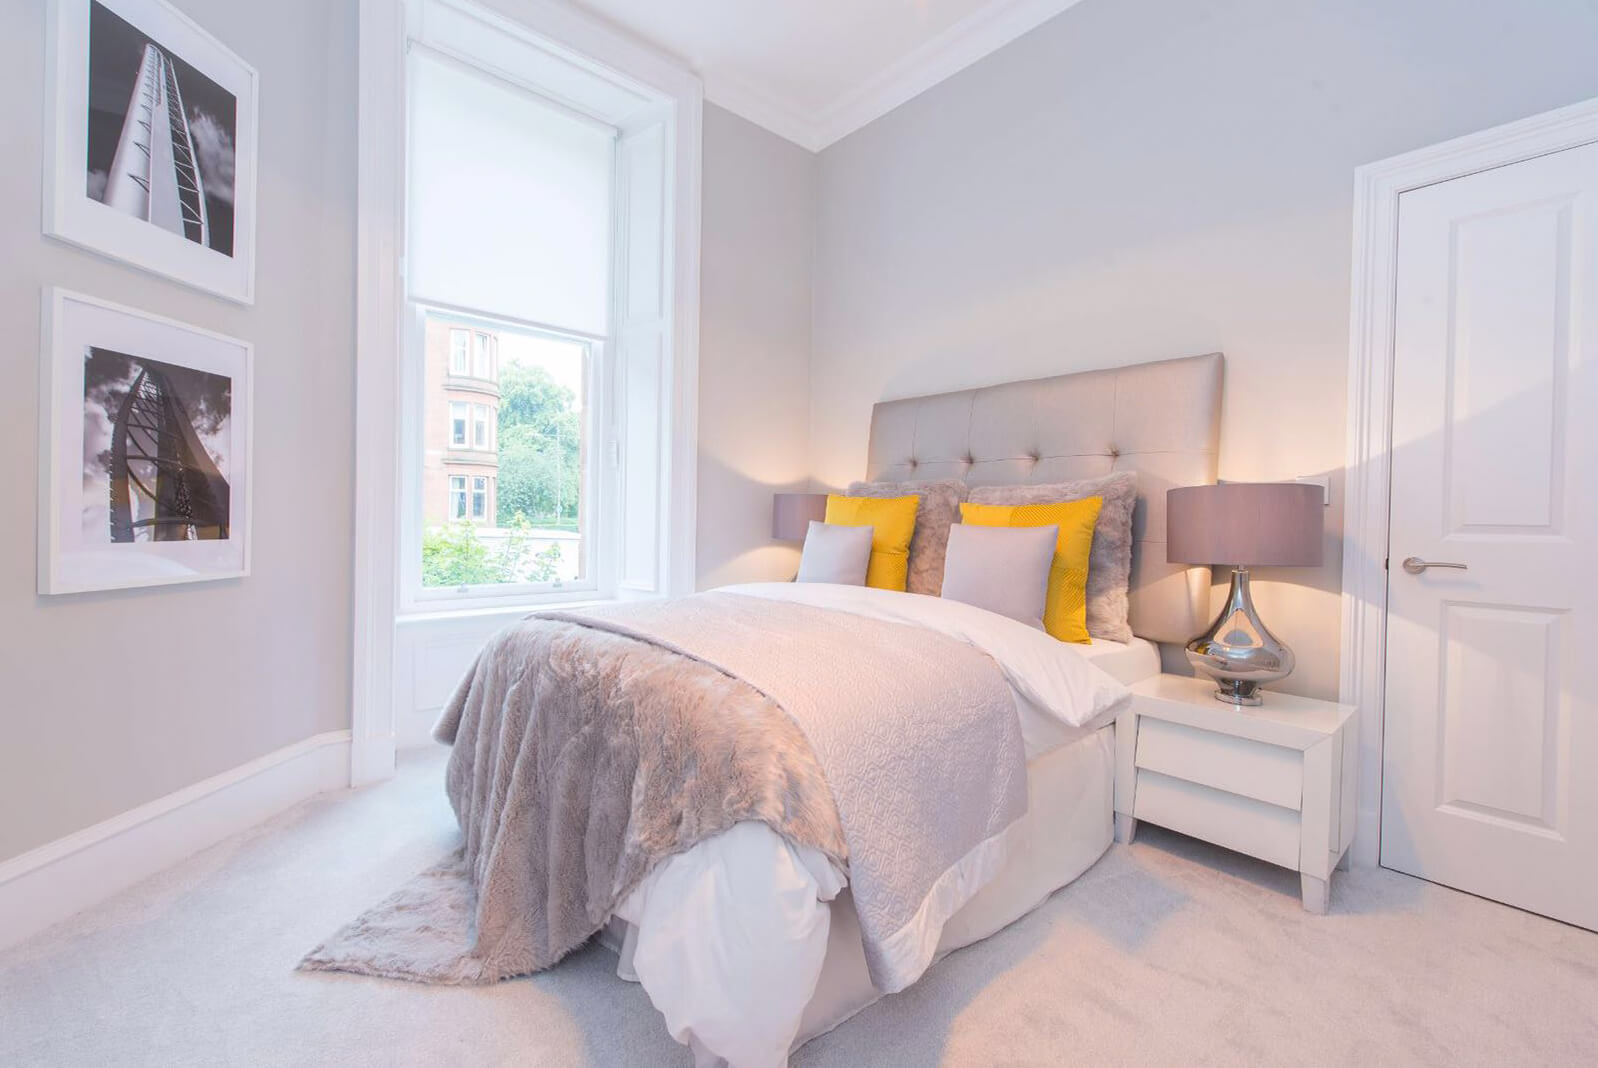 Furnished and carpeted second bedroom with large single window